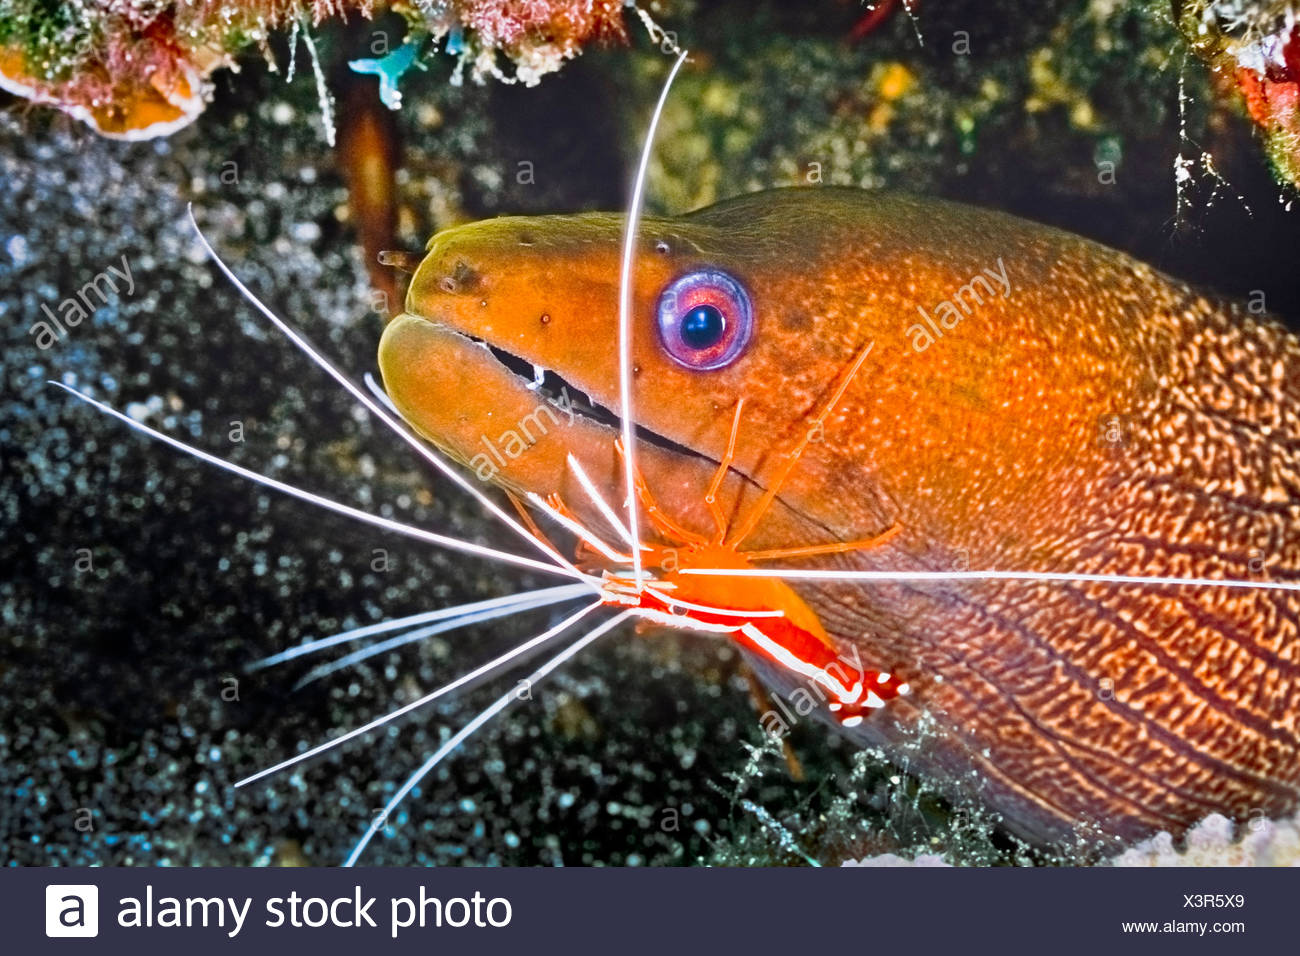 Undulated Moray Eel cleaned by Scarlet Cleaner Shrimp, Gymnothorax undulatus, Lysmata amboinensis, Big Island, Hawaii, USA - Stock Image